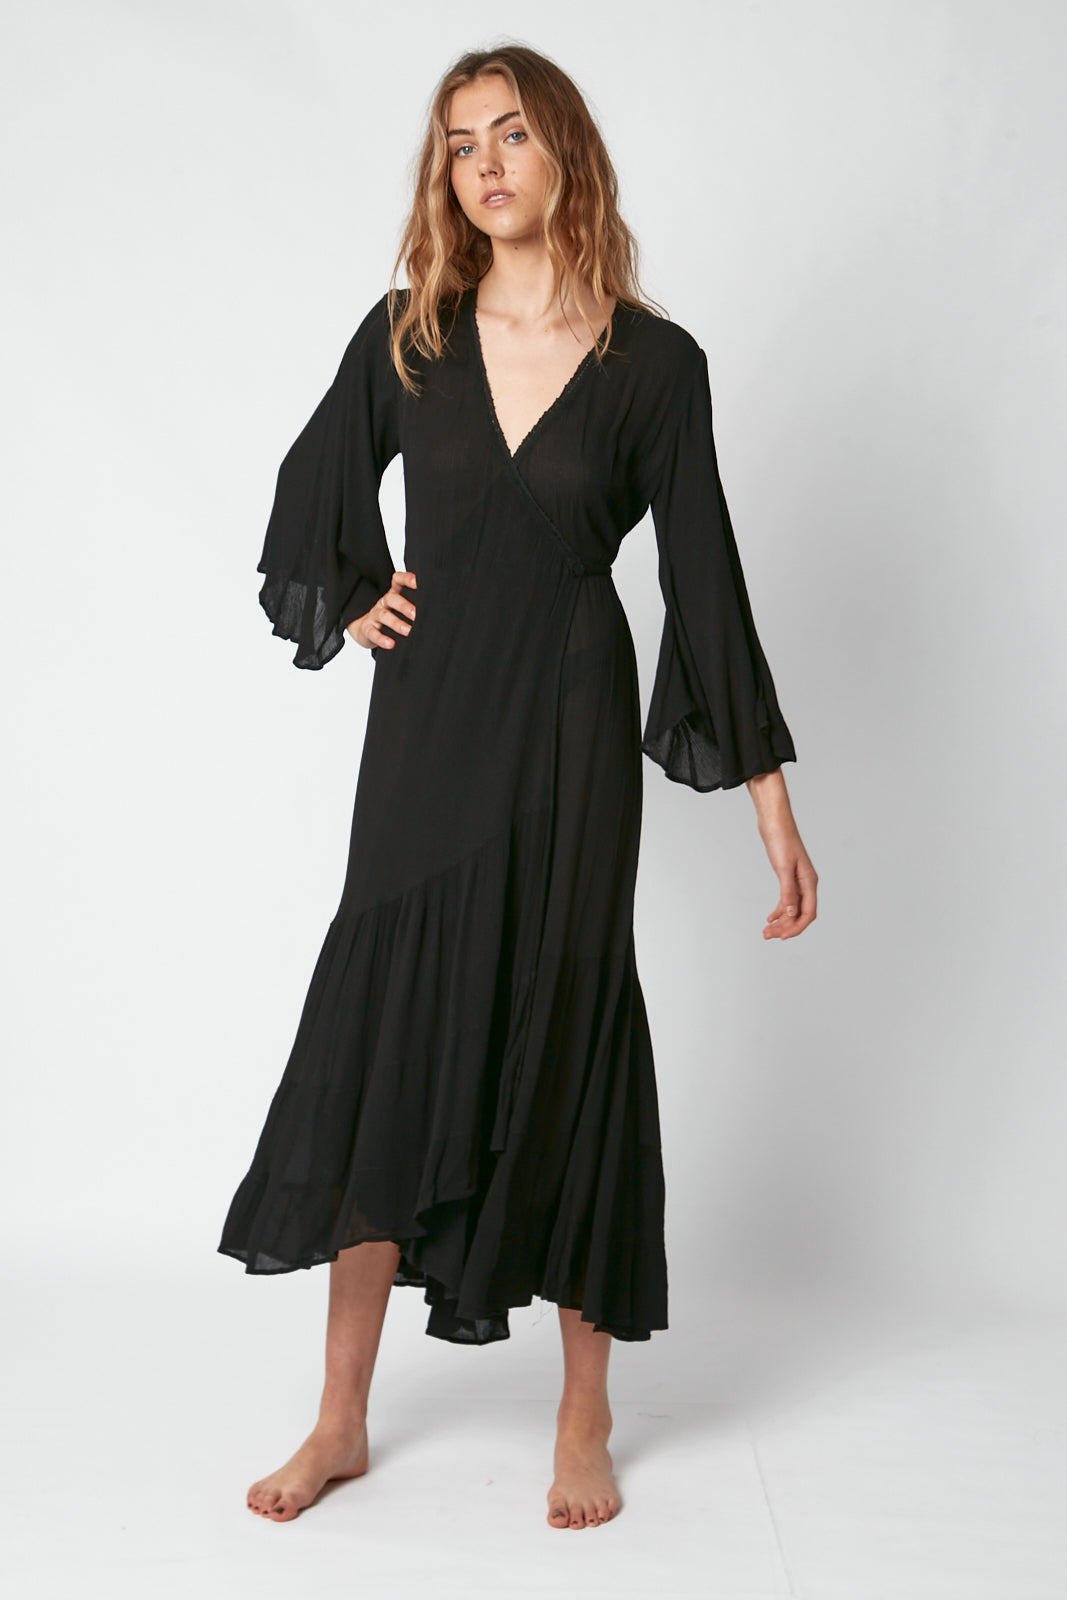 Romantika Wrap Dress